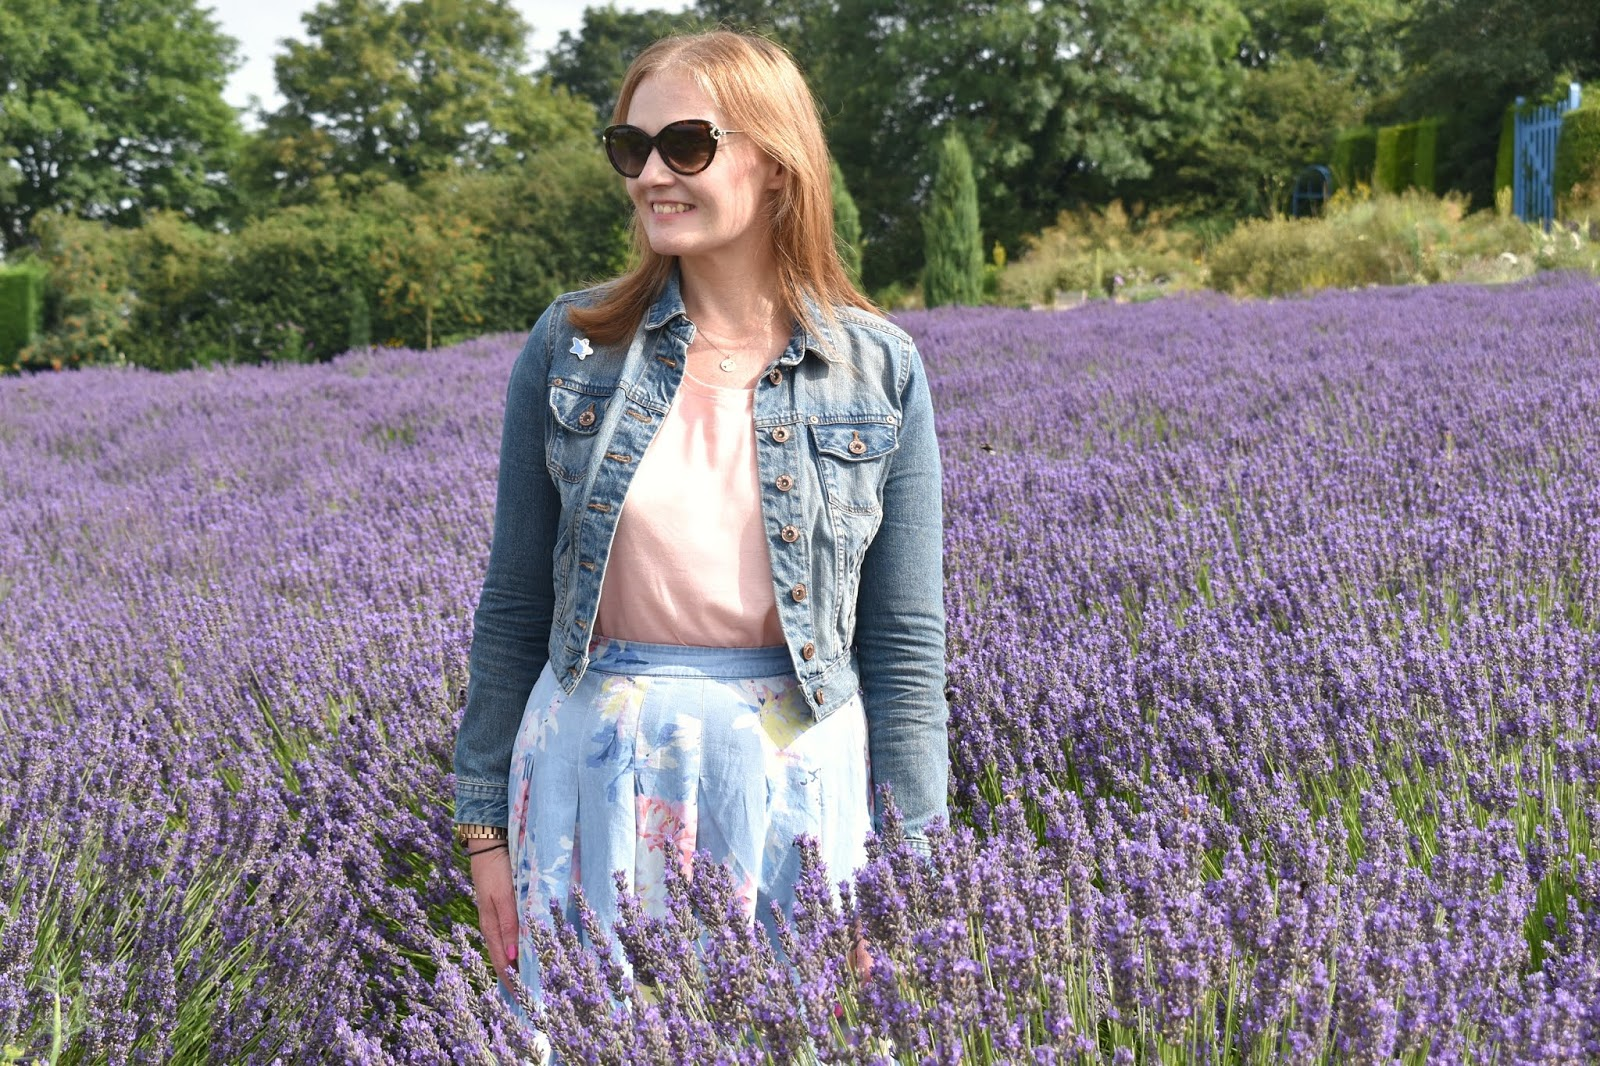 Where to Find Lavender Fields in the North of England - A Trip to Yorkshire Lavender